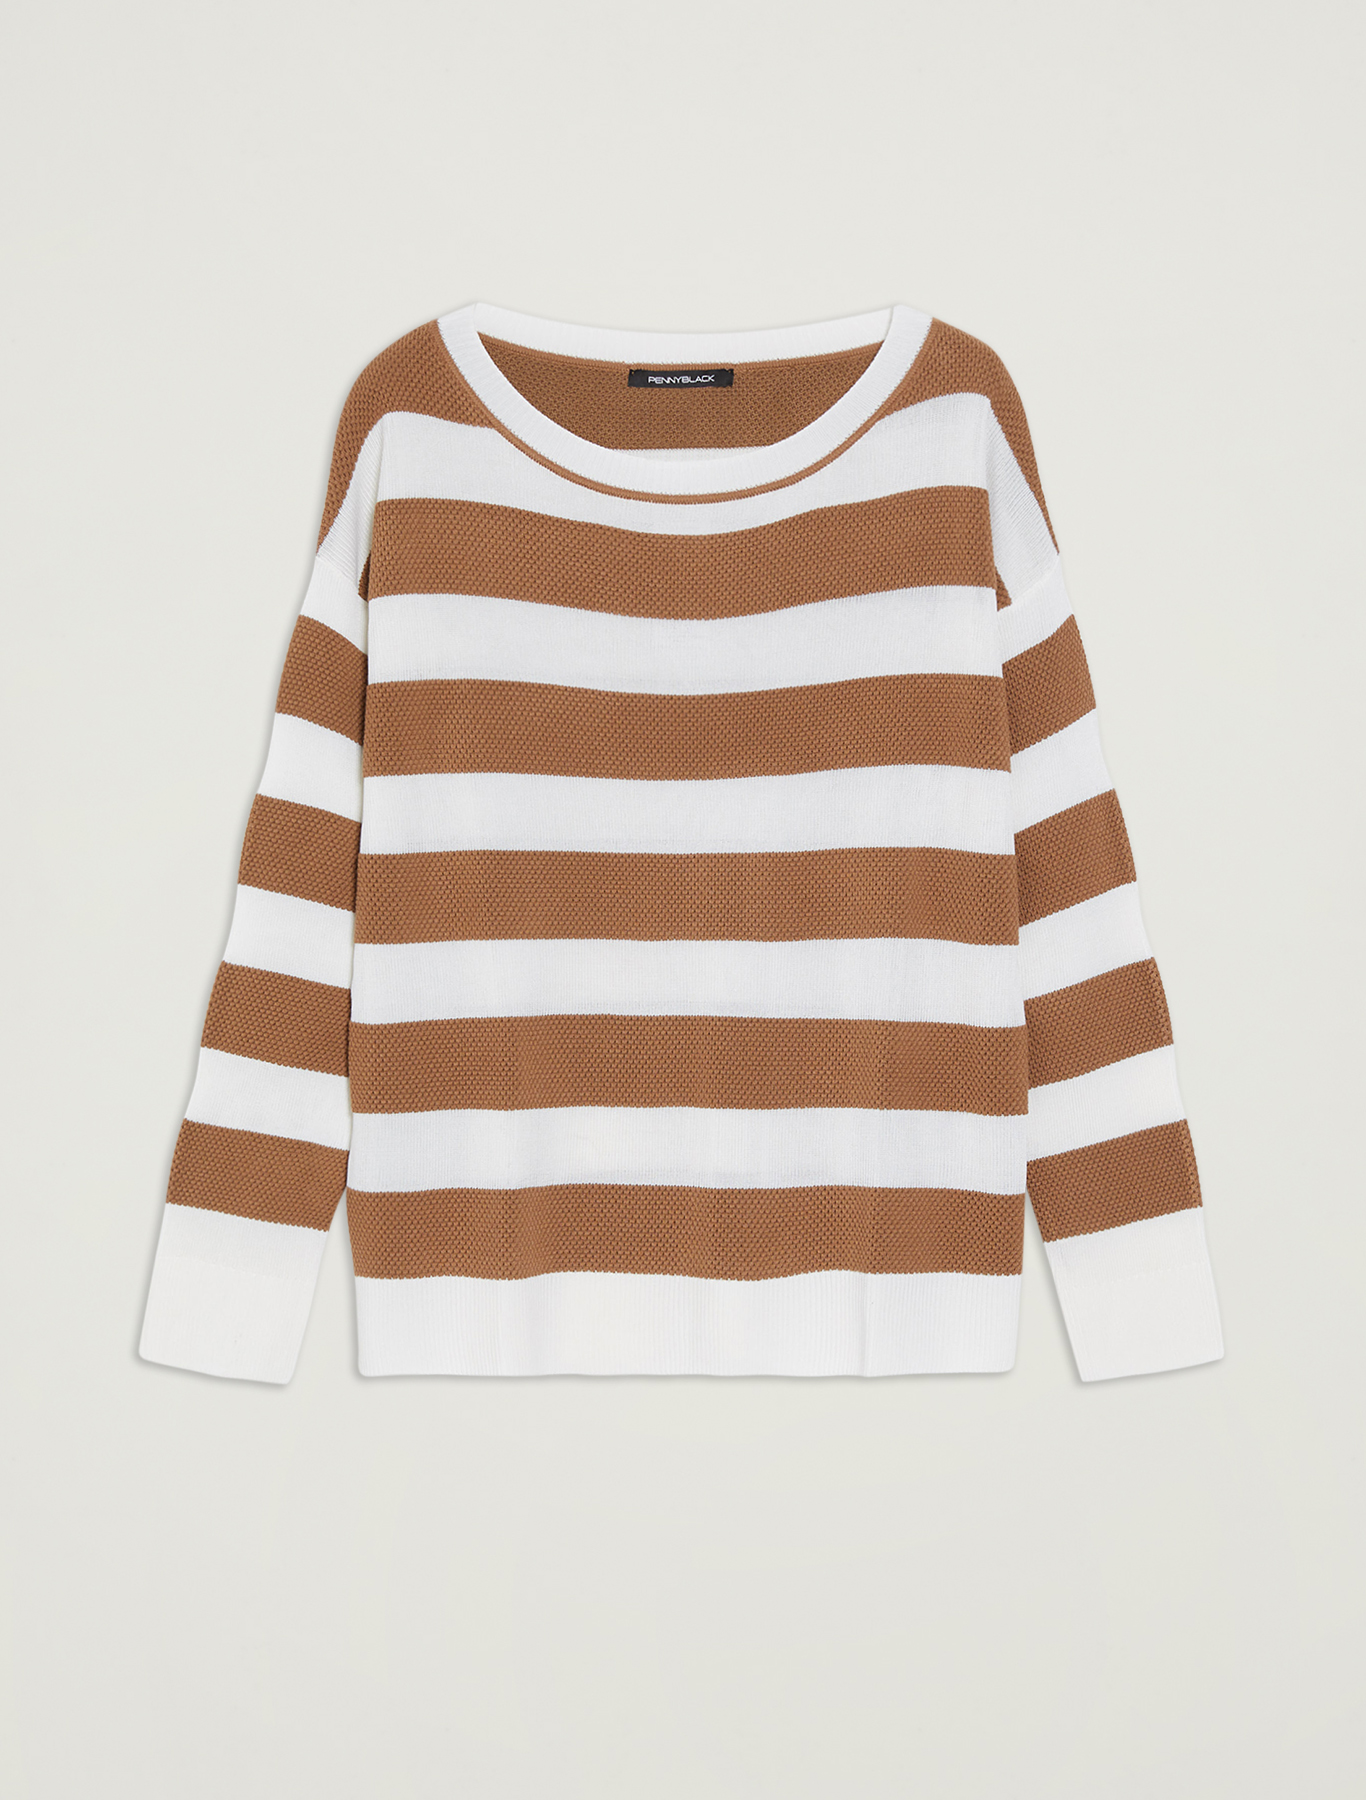 Sweater with maxi stripes - hazelnut - pennyblack